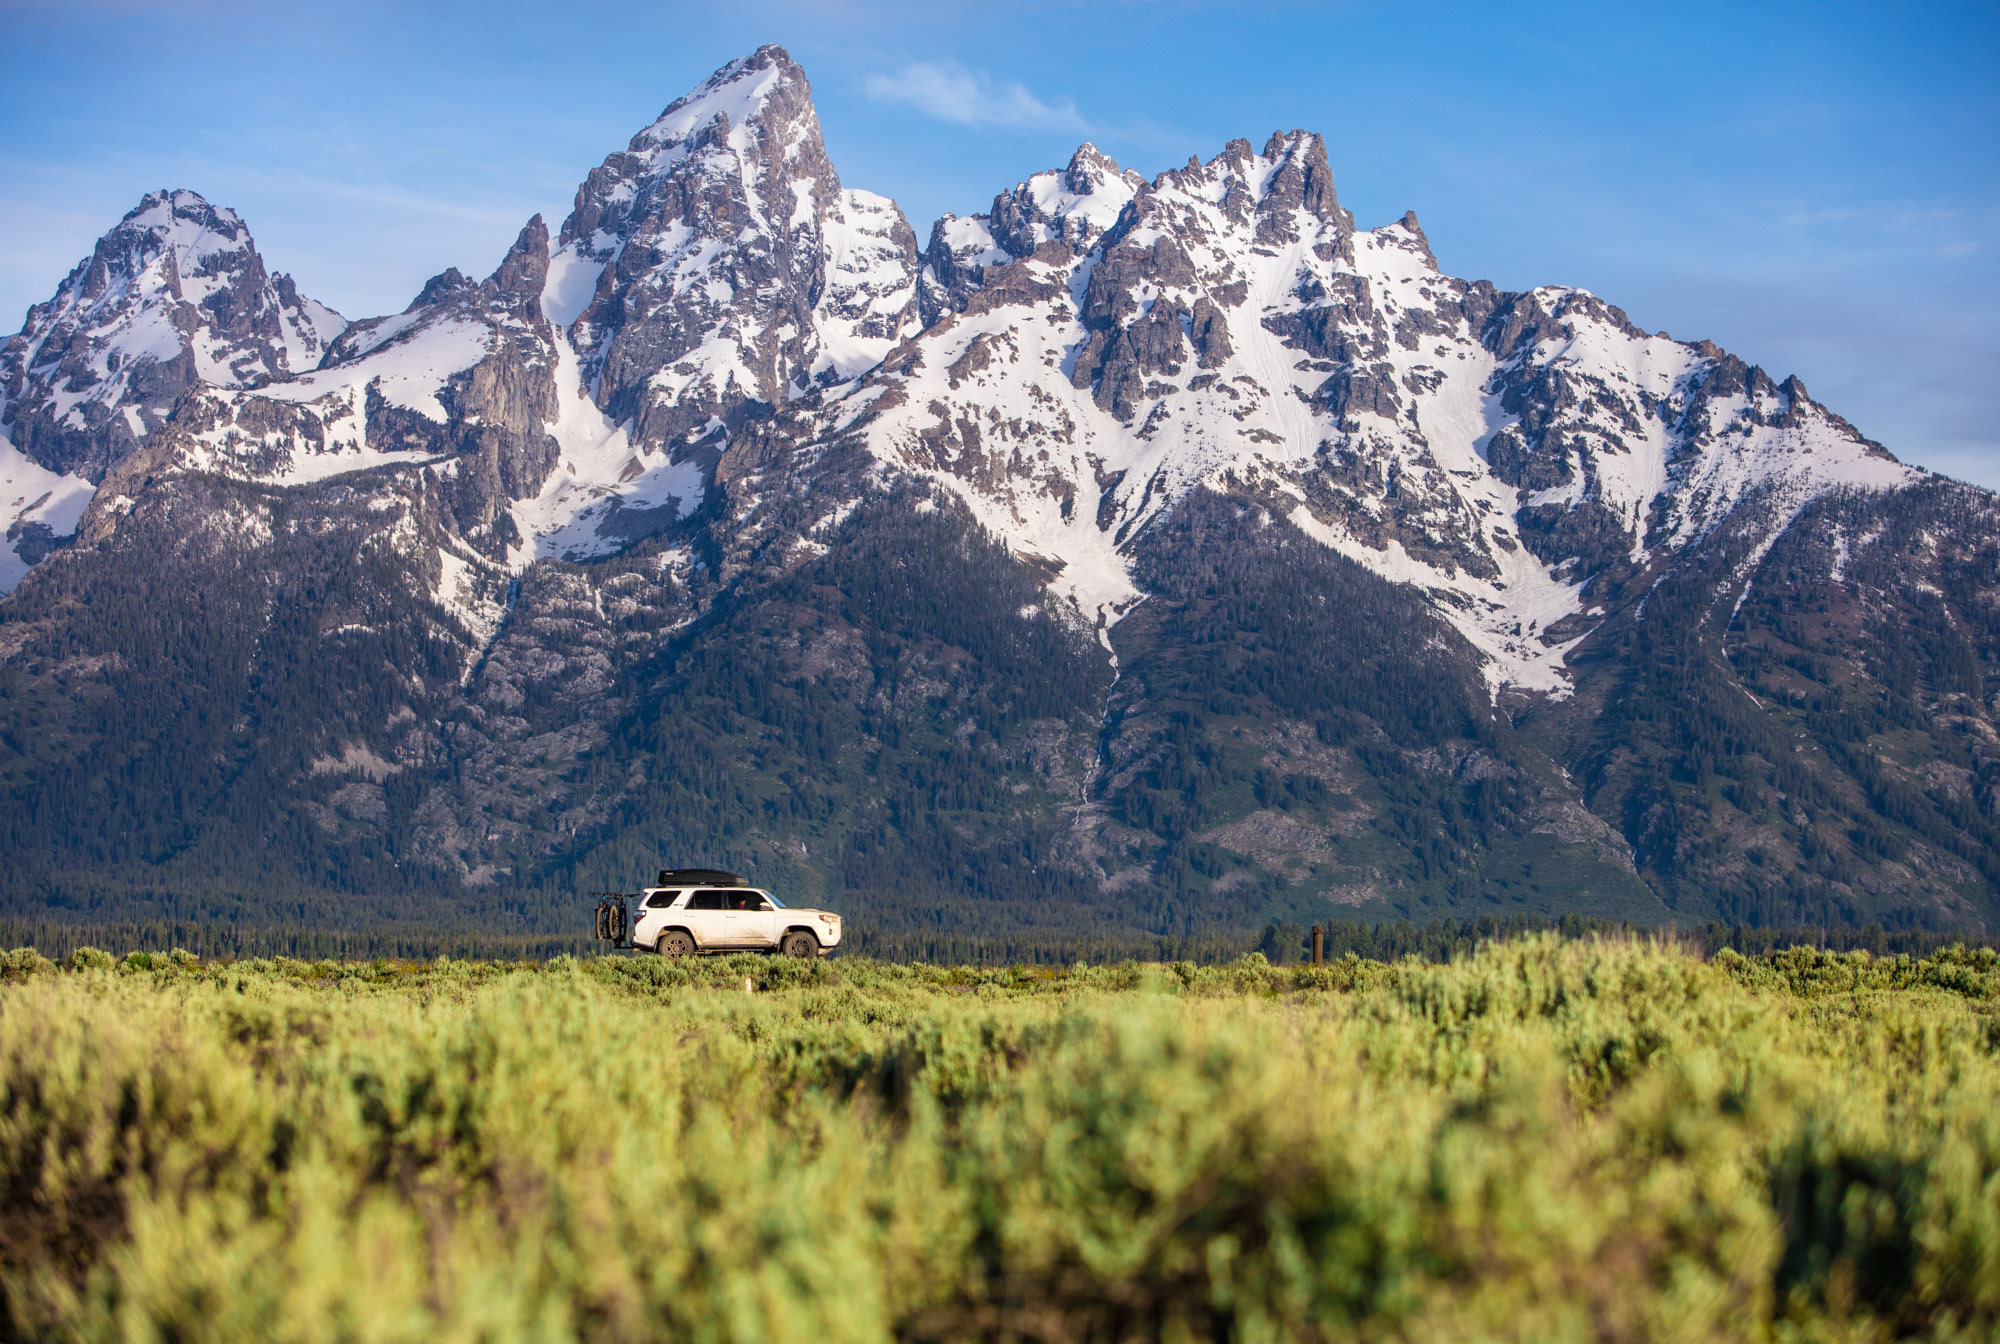 Toyota 4runner with Kuat bike rack driving in front of the tetons in Wyoming.